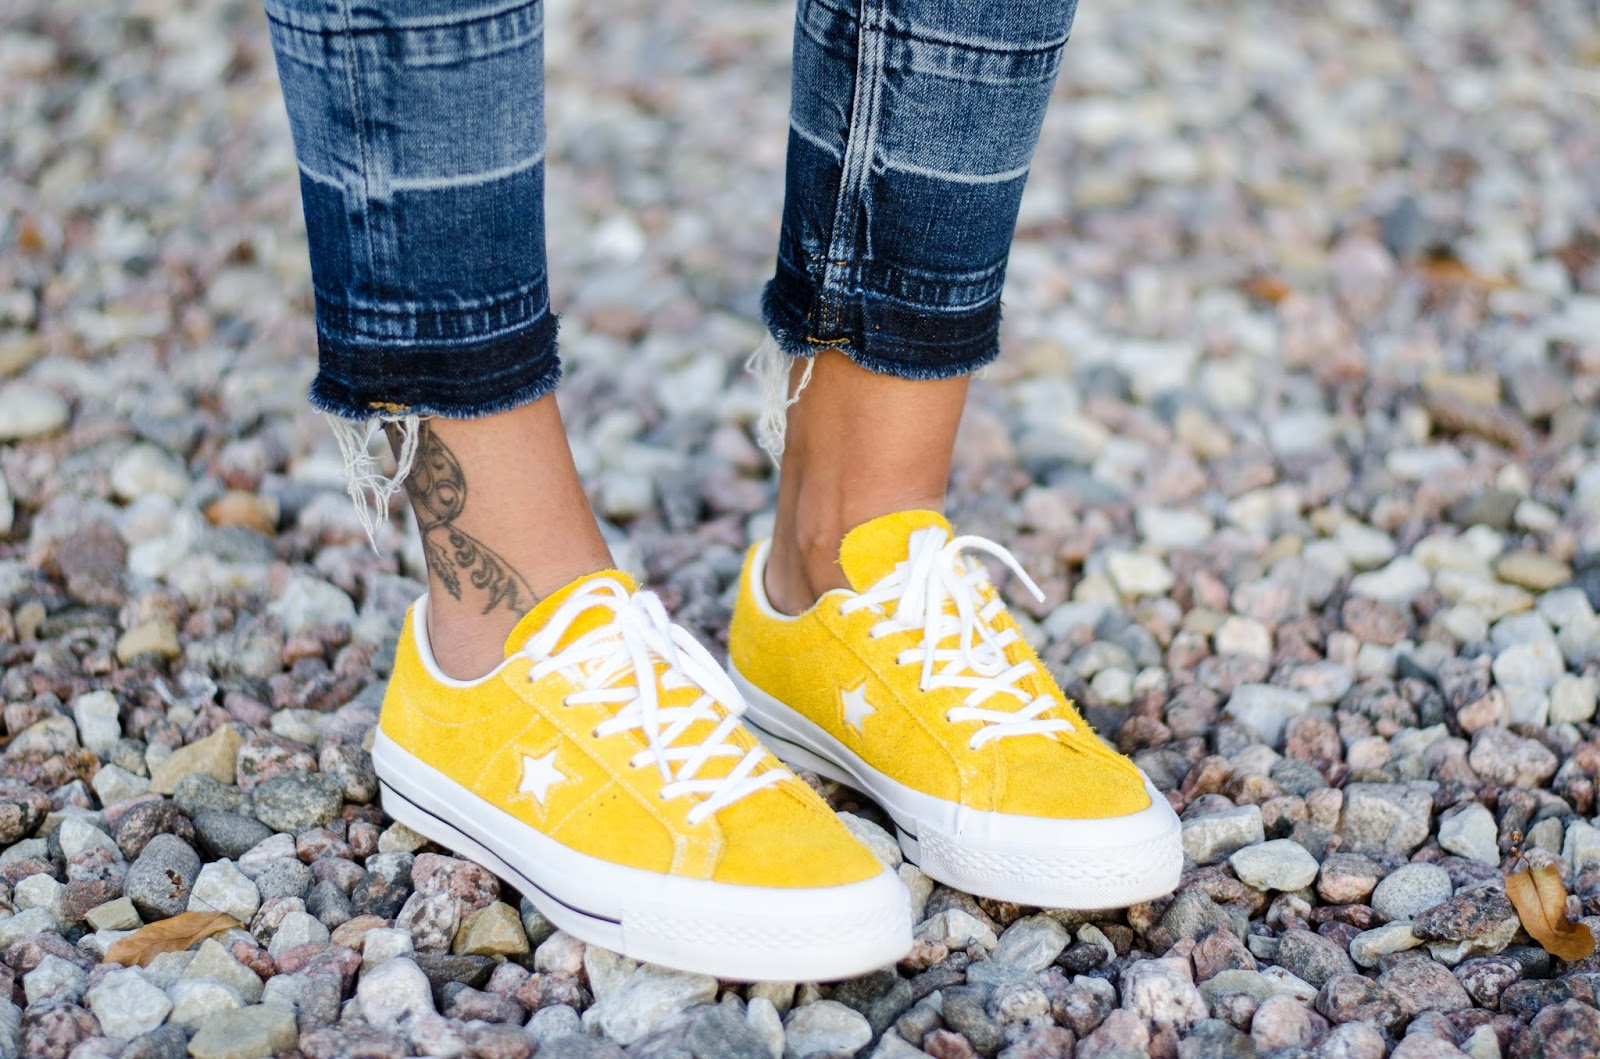 converse yellow suede sneakers